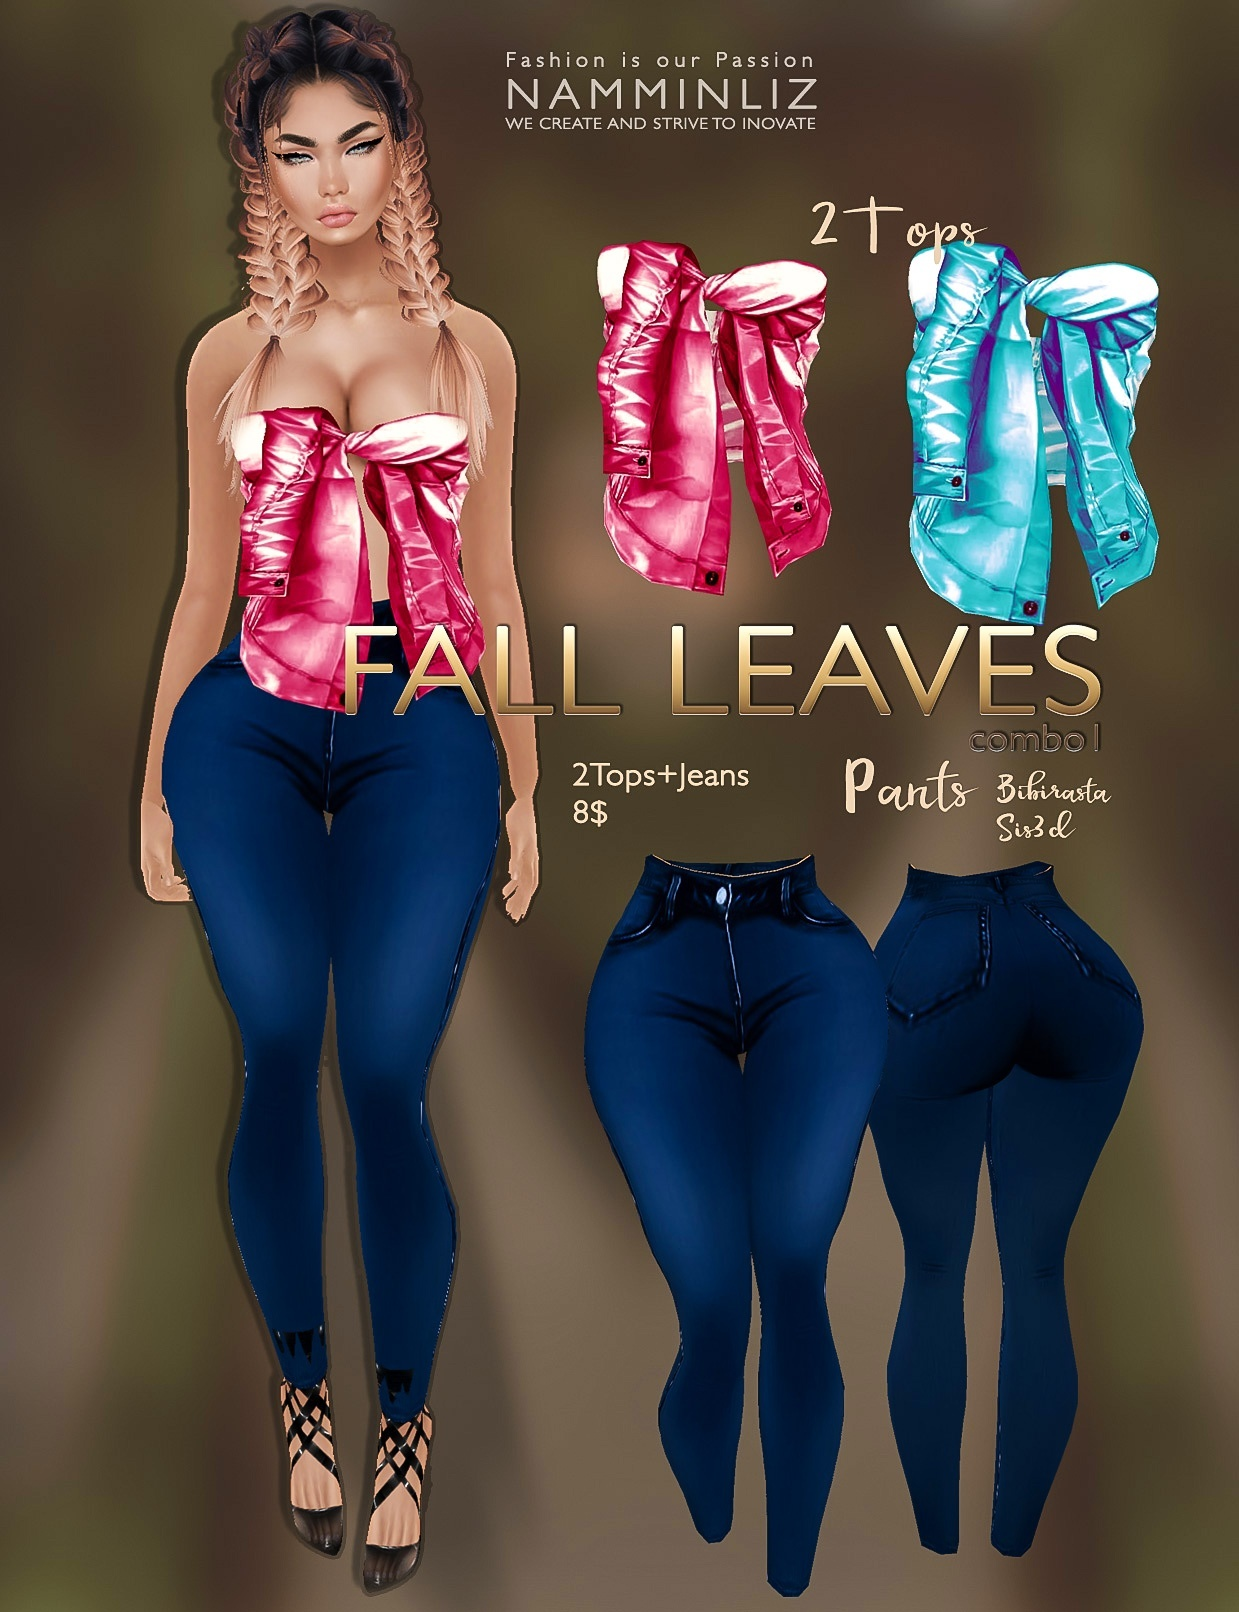 Fall Leaves Full combo imvu texture JPG ( 4 Tops, 4 Jeans Bibirasta & Sis3d )